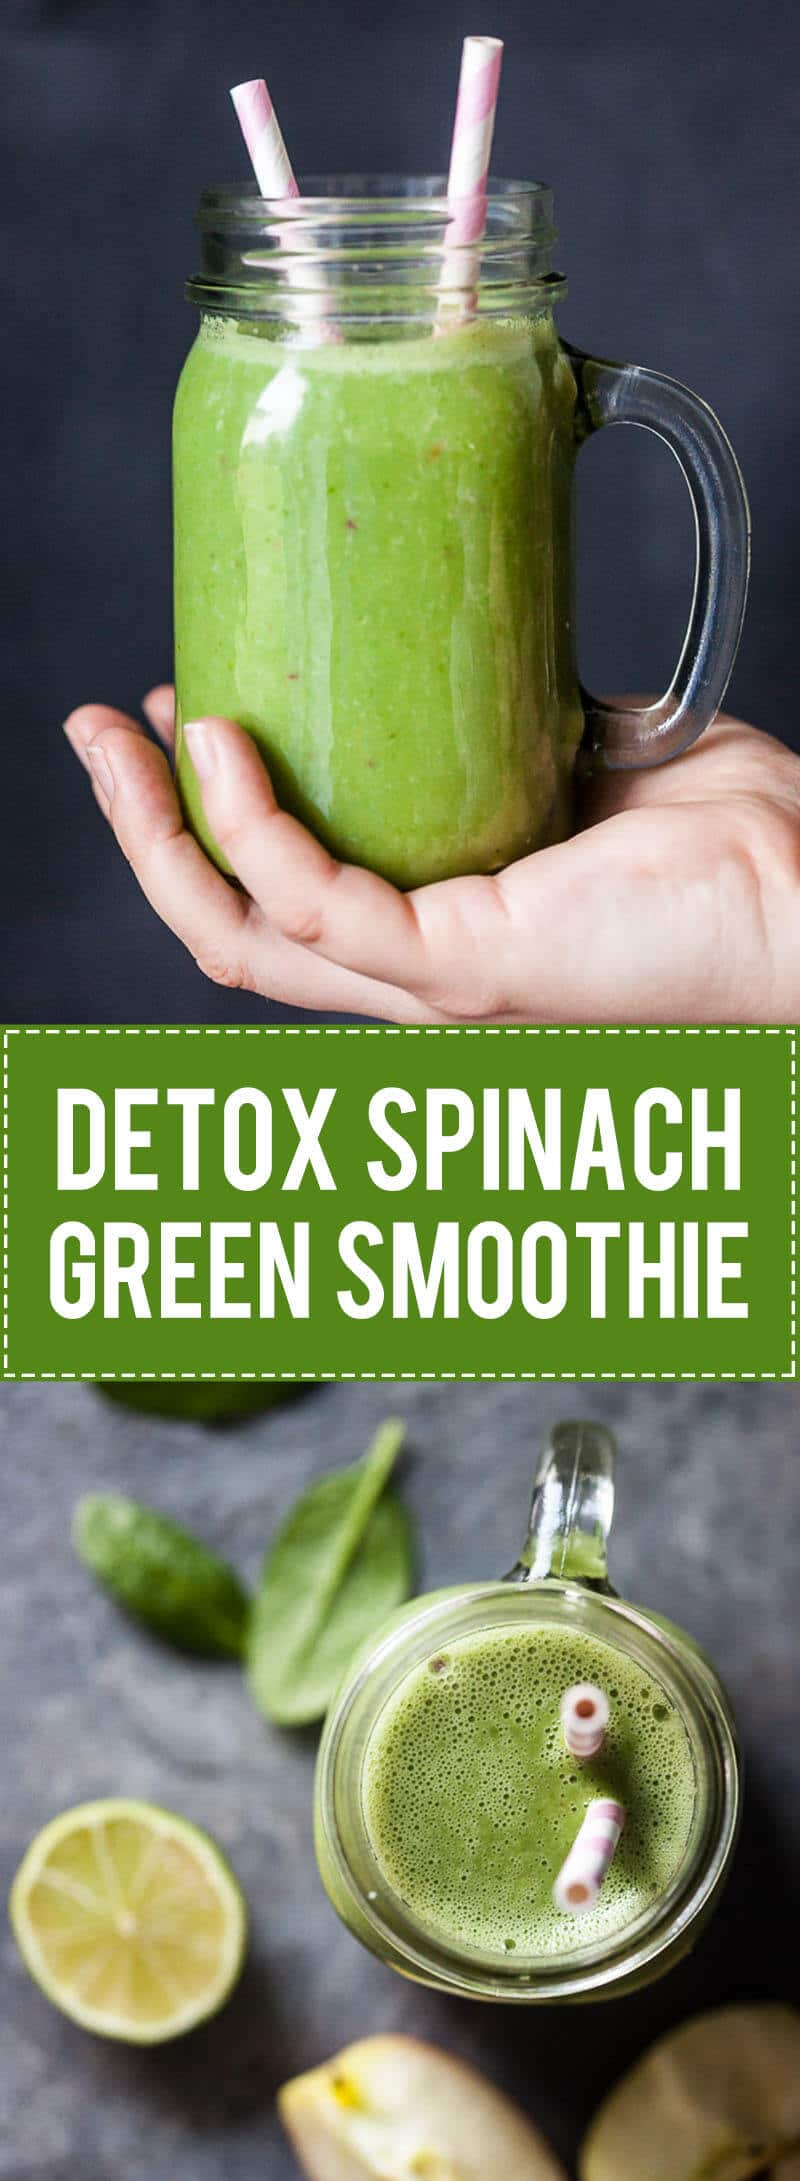 Start spring cleaning with a delicious & healthy Detox Spinach Green Smoothie. Just 5 ingredients for a powerful detox smoothie! | www.vibrantplate.com